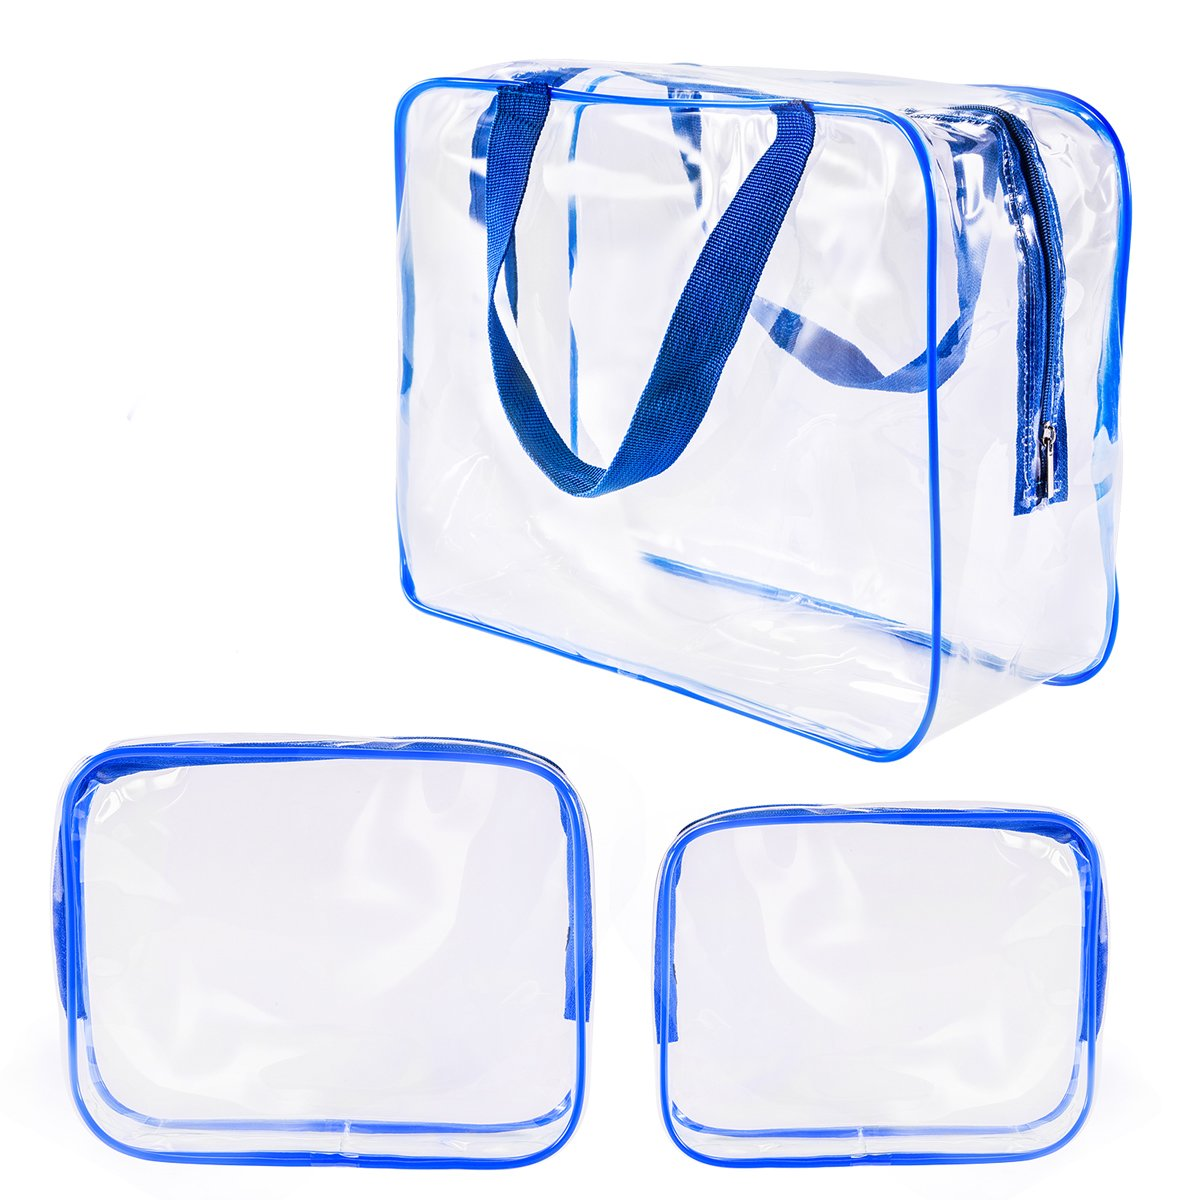 3Pcs Crystal Clear Plastic Cosmetic Bags Travel PVC Vinyl Toiletry Bag Set, Zipper Large Transparent Waterproof Make-Up Case Diaper Pouch for Baby Women Men, Beach Swim Pool Packing Organizer Bag Blue